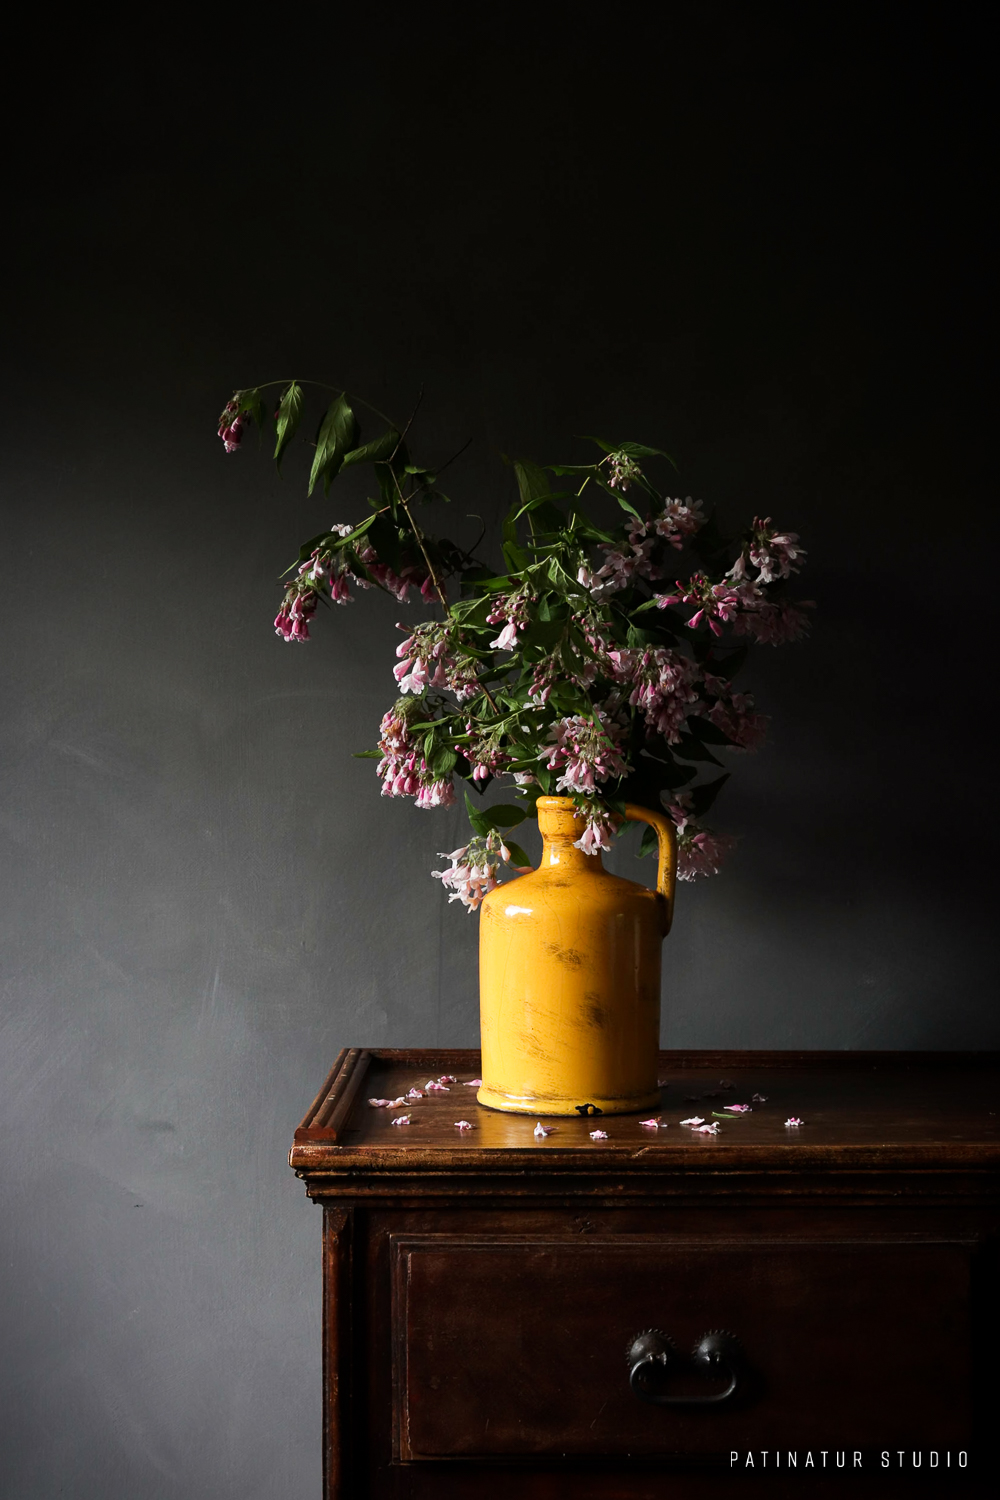 Photo art | Dark and moody still life with beauty bush bouquet in yellow vase